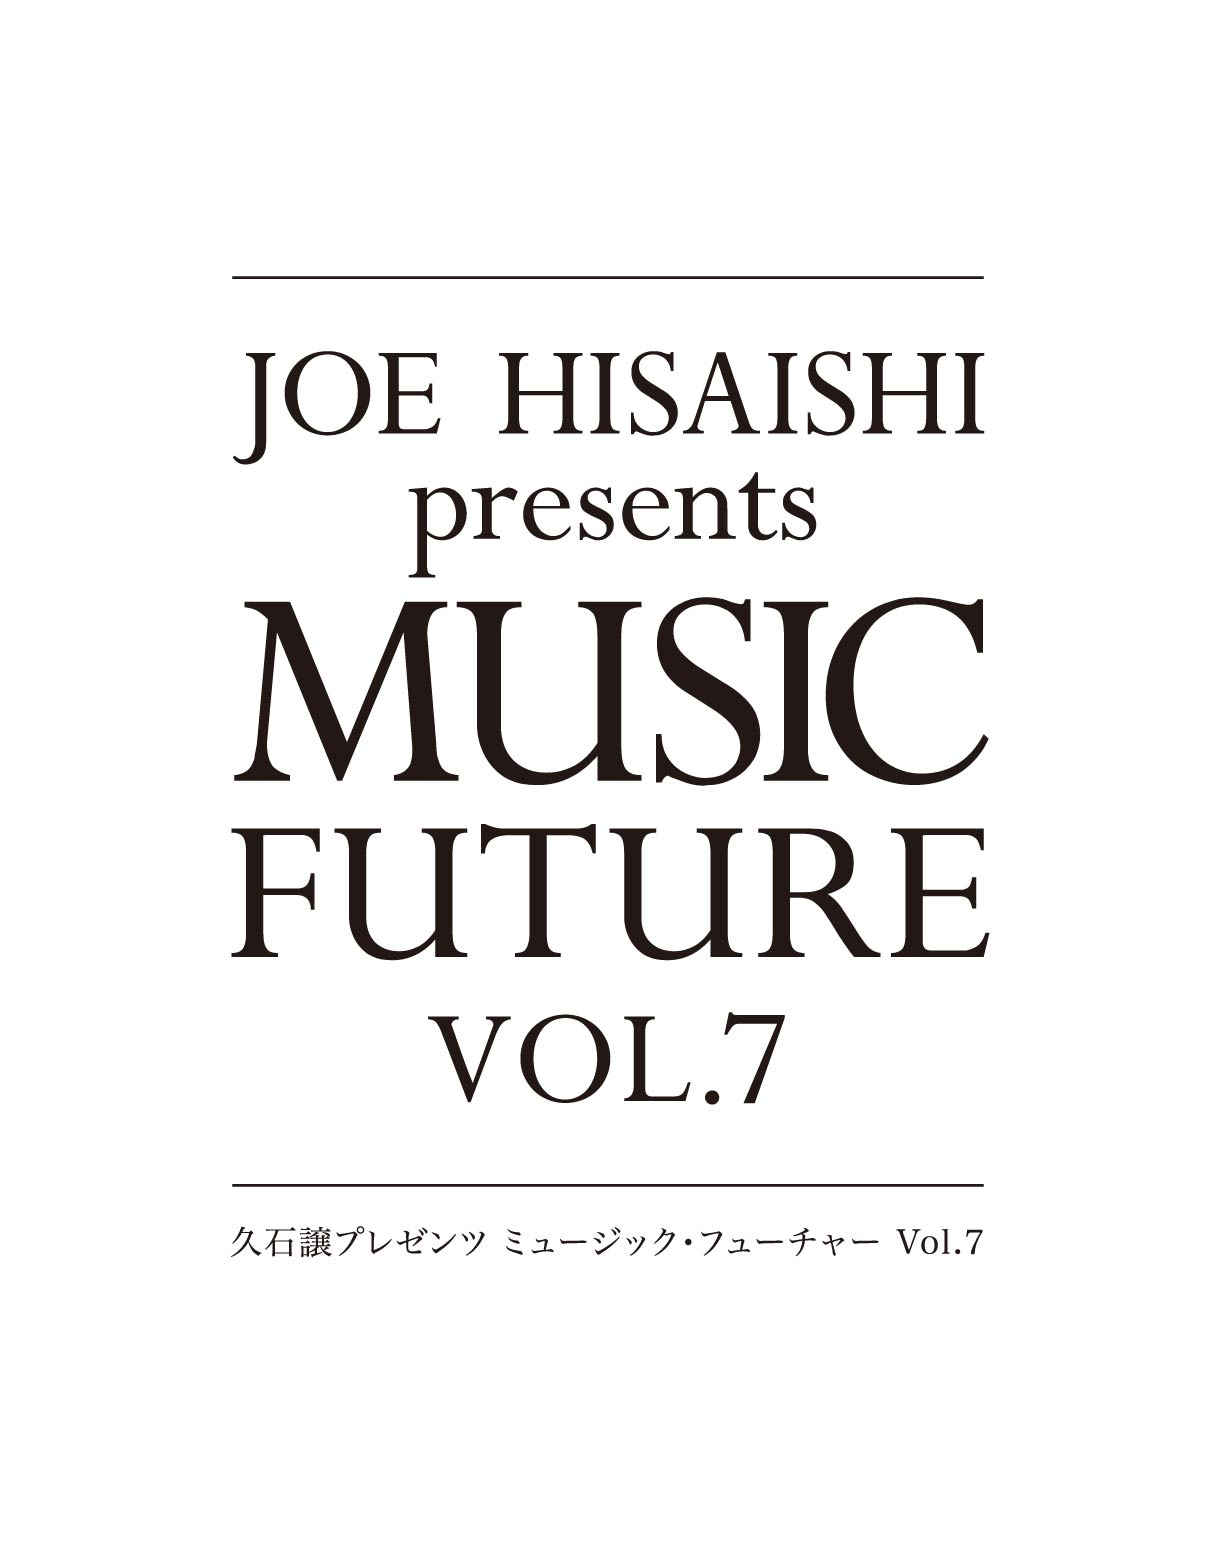 [Streaming+] Joe Hisaishi presents MUSIC FUTURE Vol.7